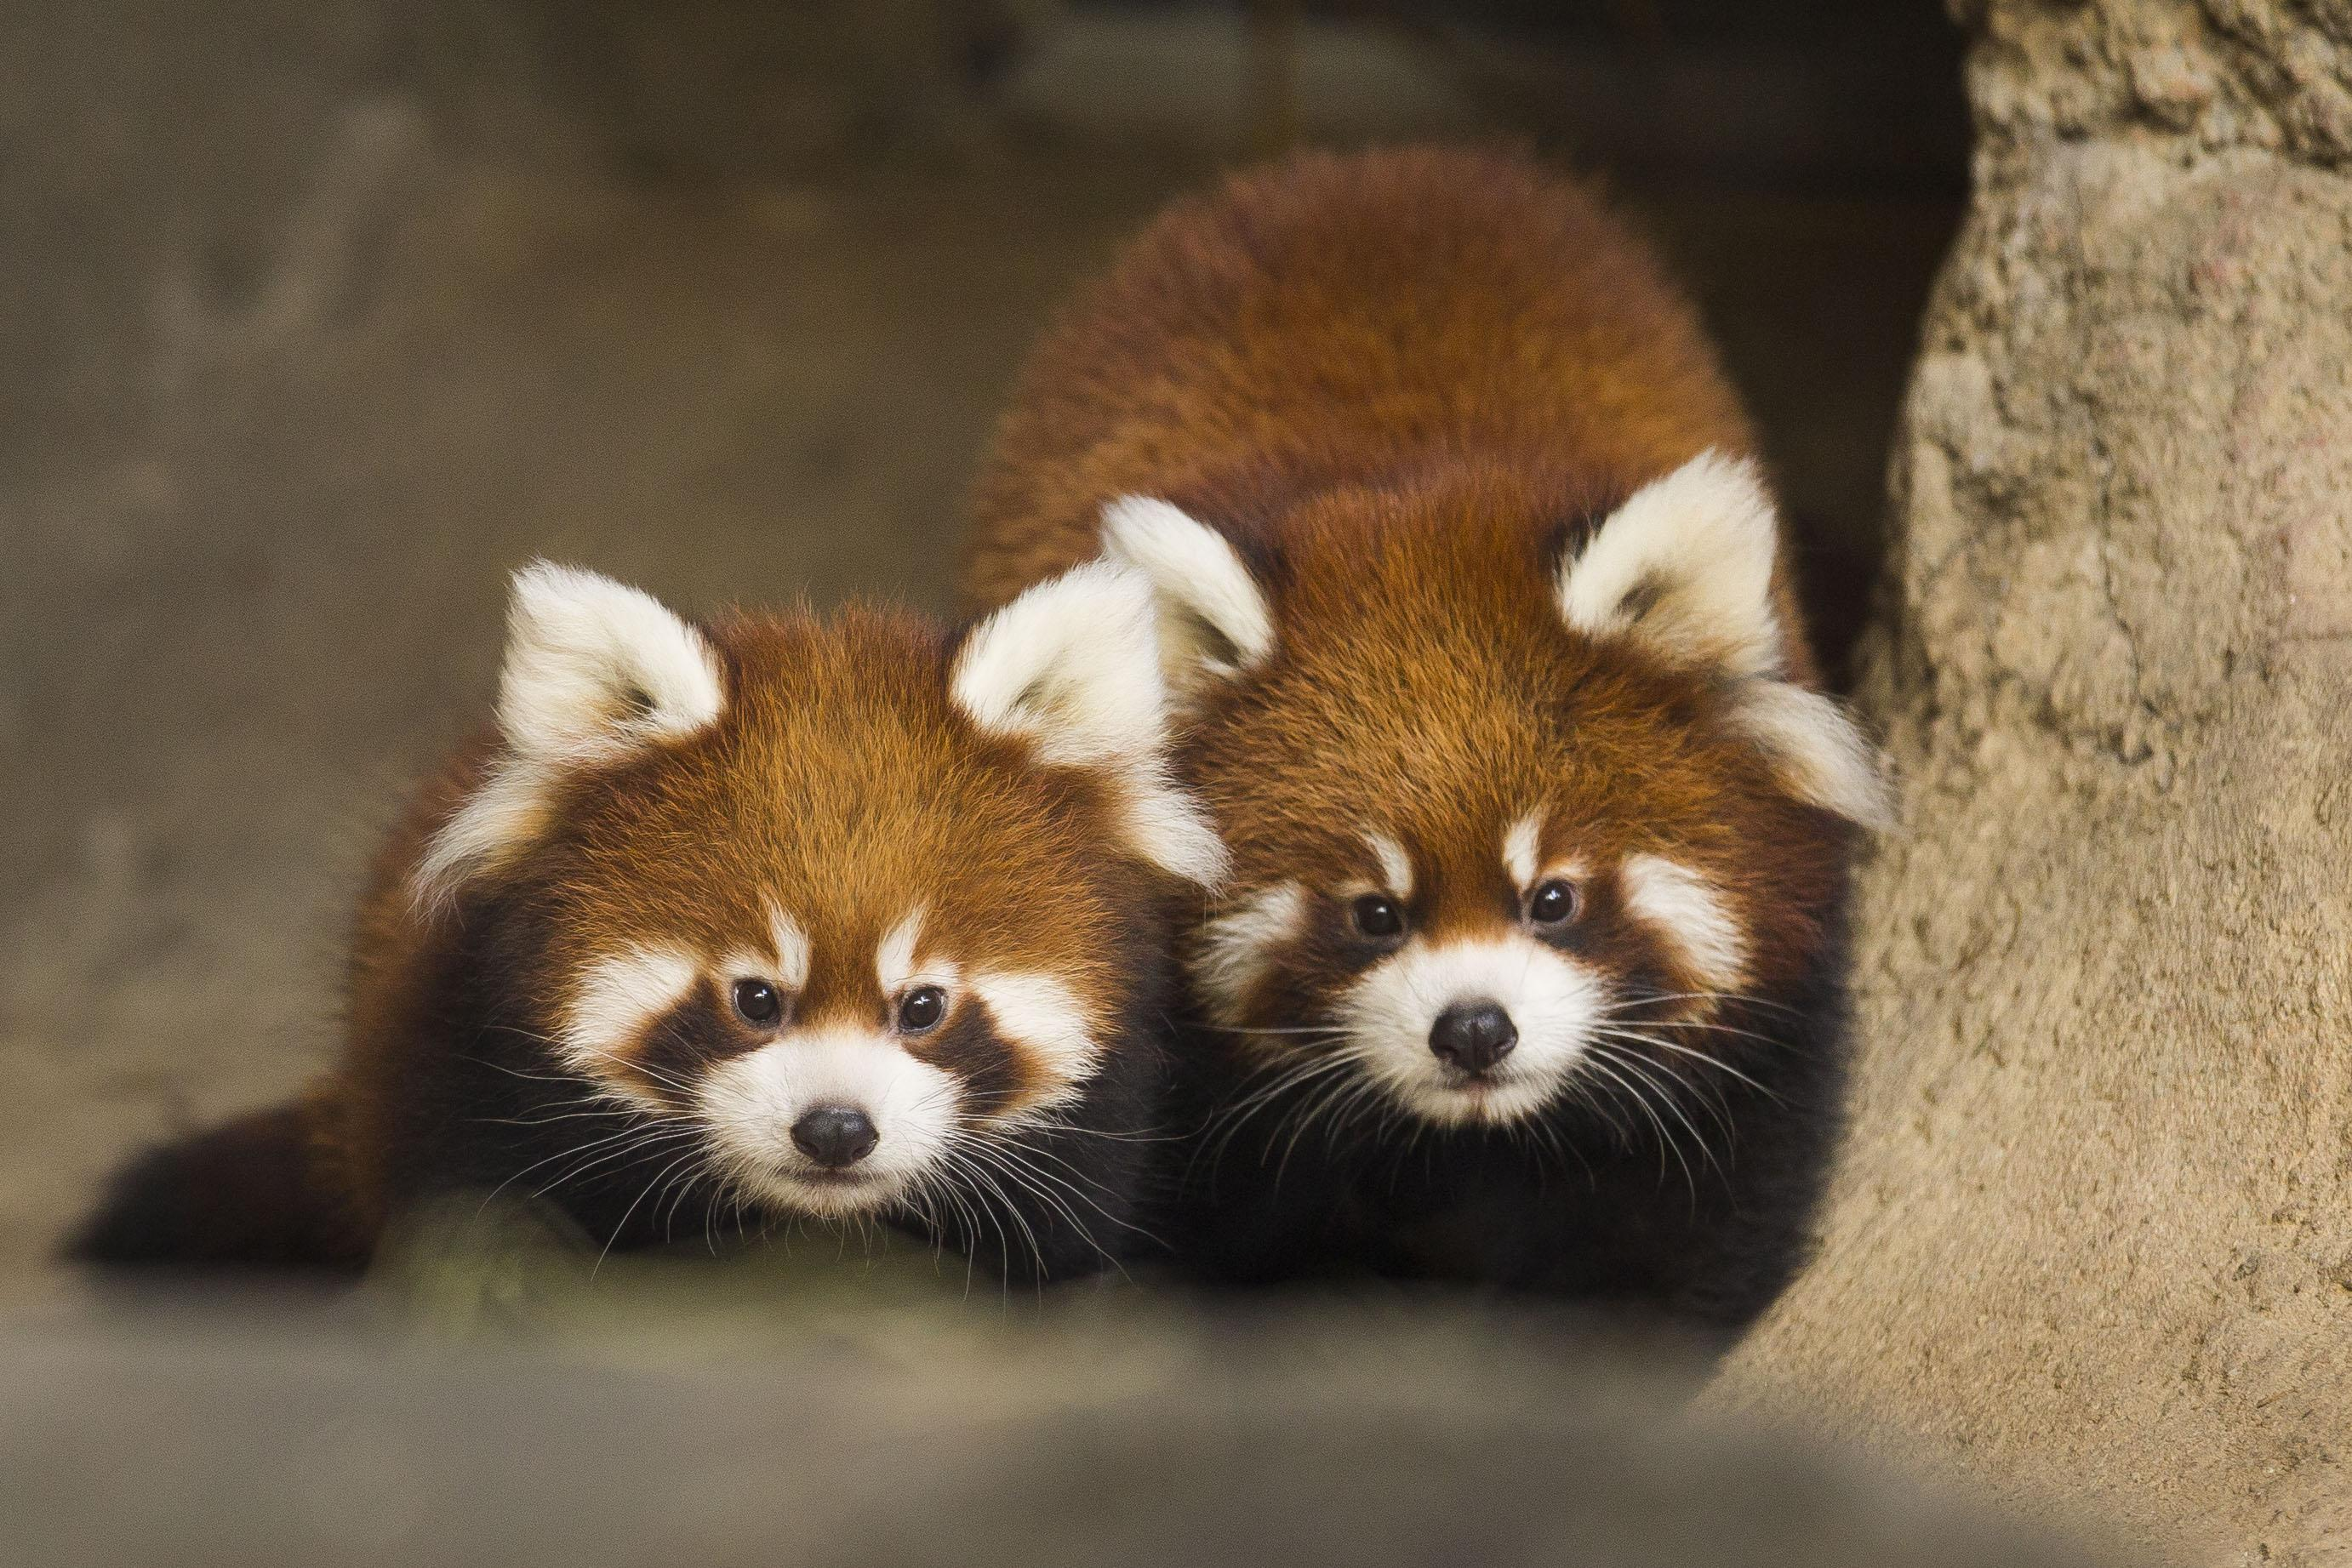 Cute Baby Face Wallpaper Red Panda Cubs Leaving Lincoln Park Zoo Chicago Tonight